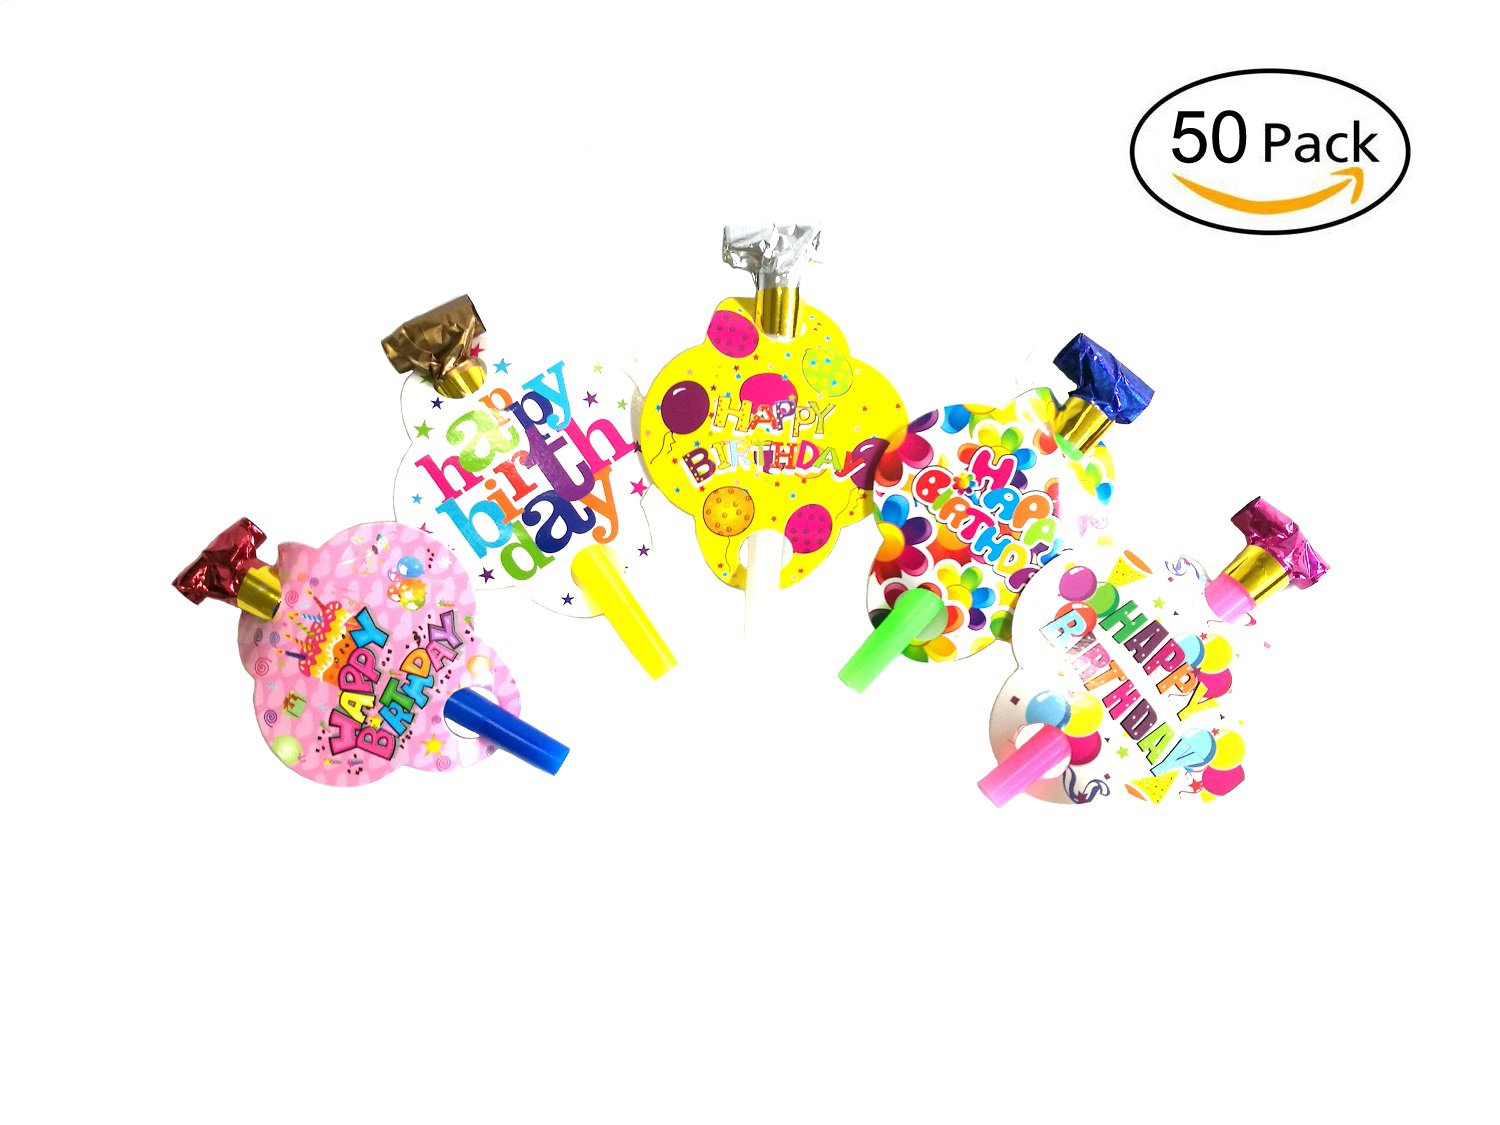 50 pcs Party Horns Party Blowers Noisemakers Whistles Colorful Blowouts (Includes 5 Different Patterns) by Simple polymer